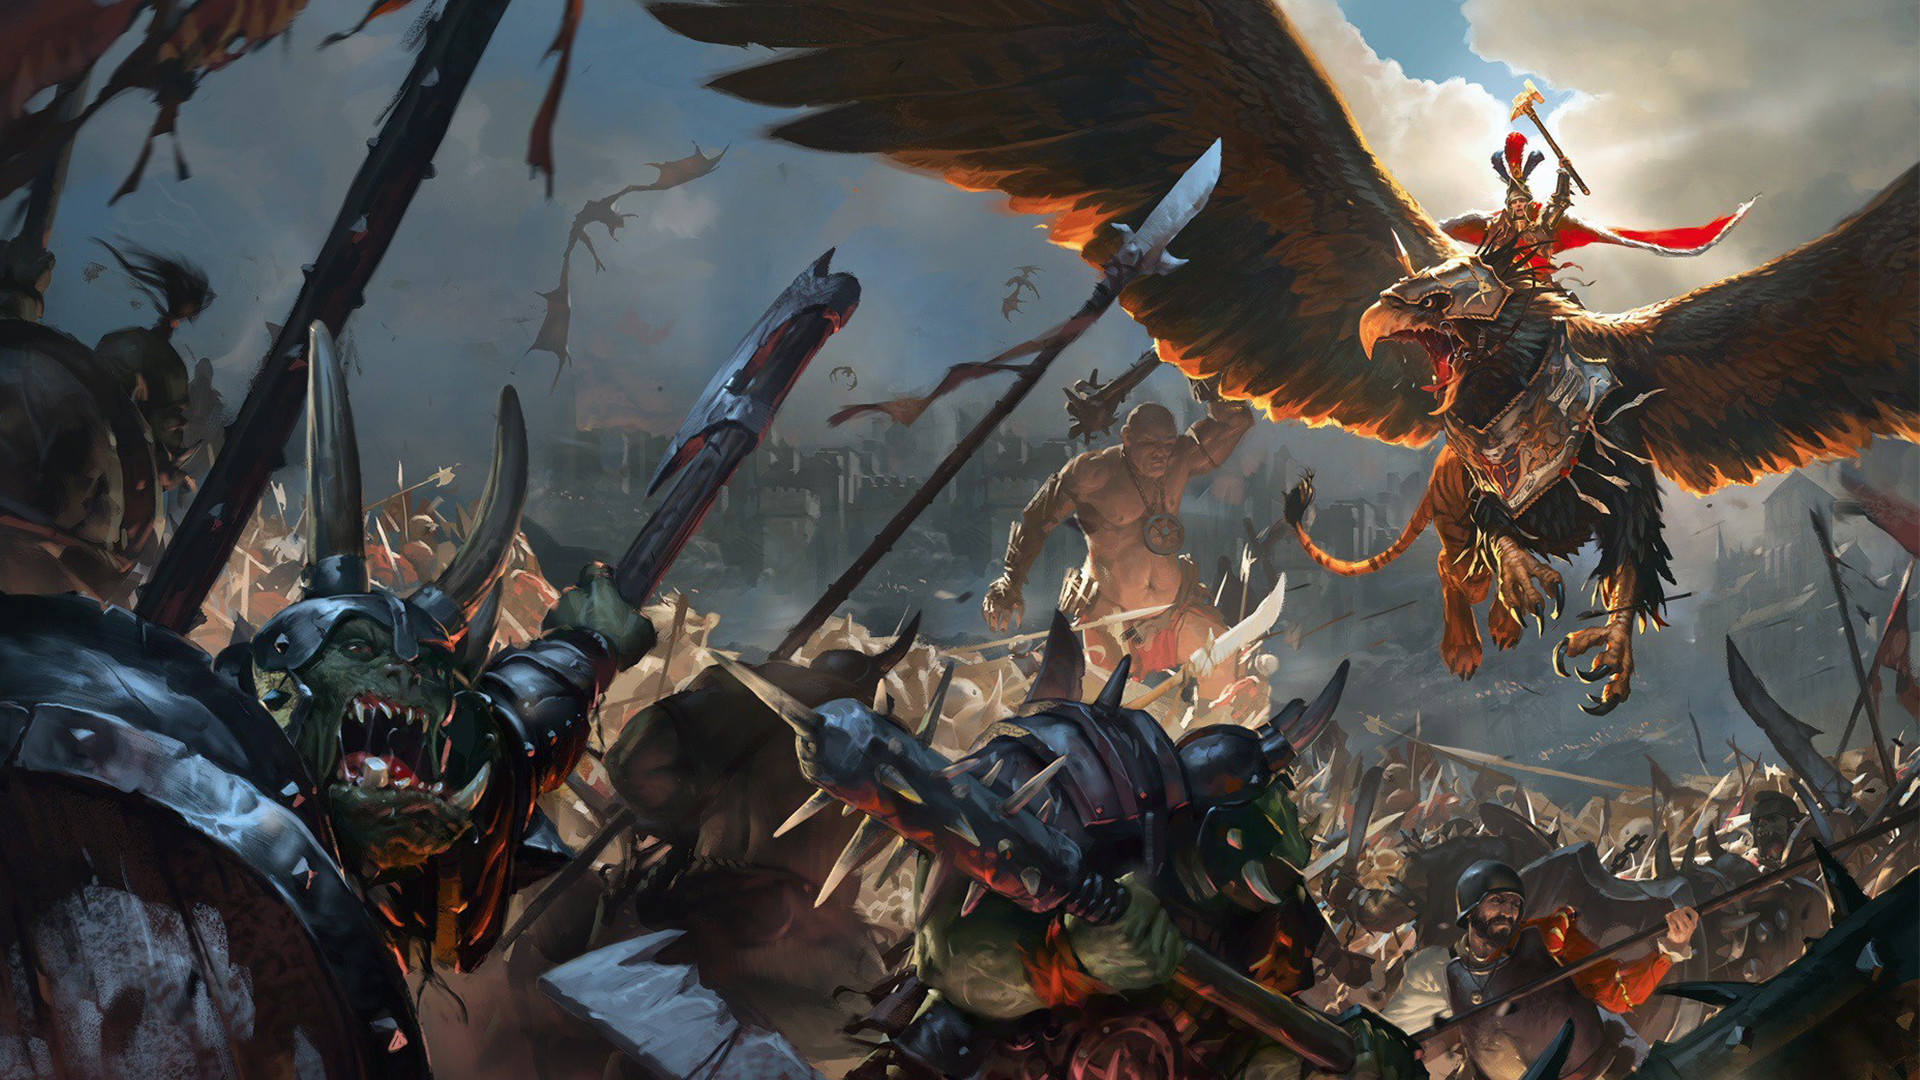 Total War Warhammer Wallpapers 1920x1080 89 Images